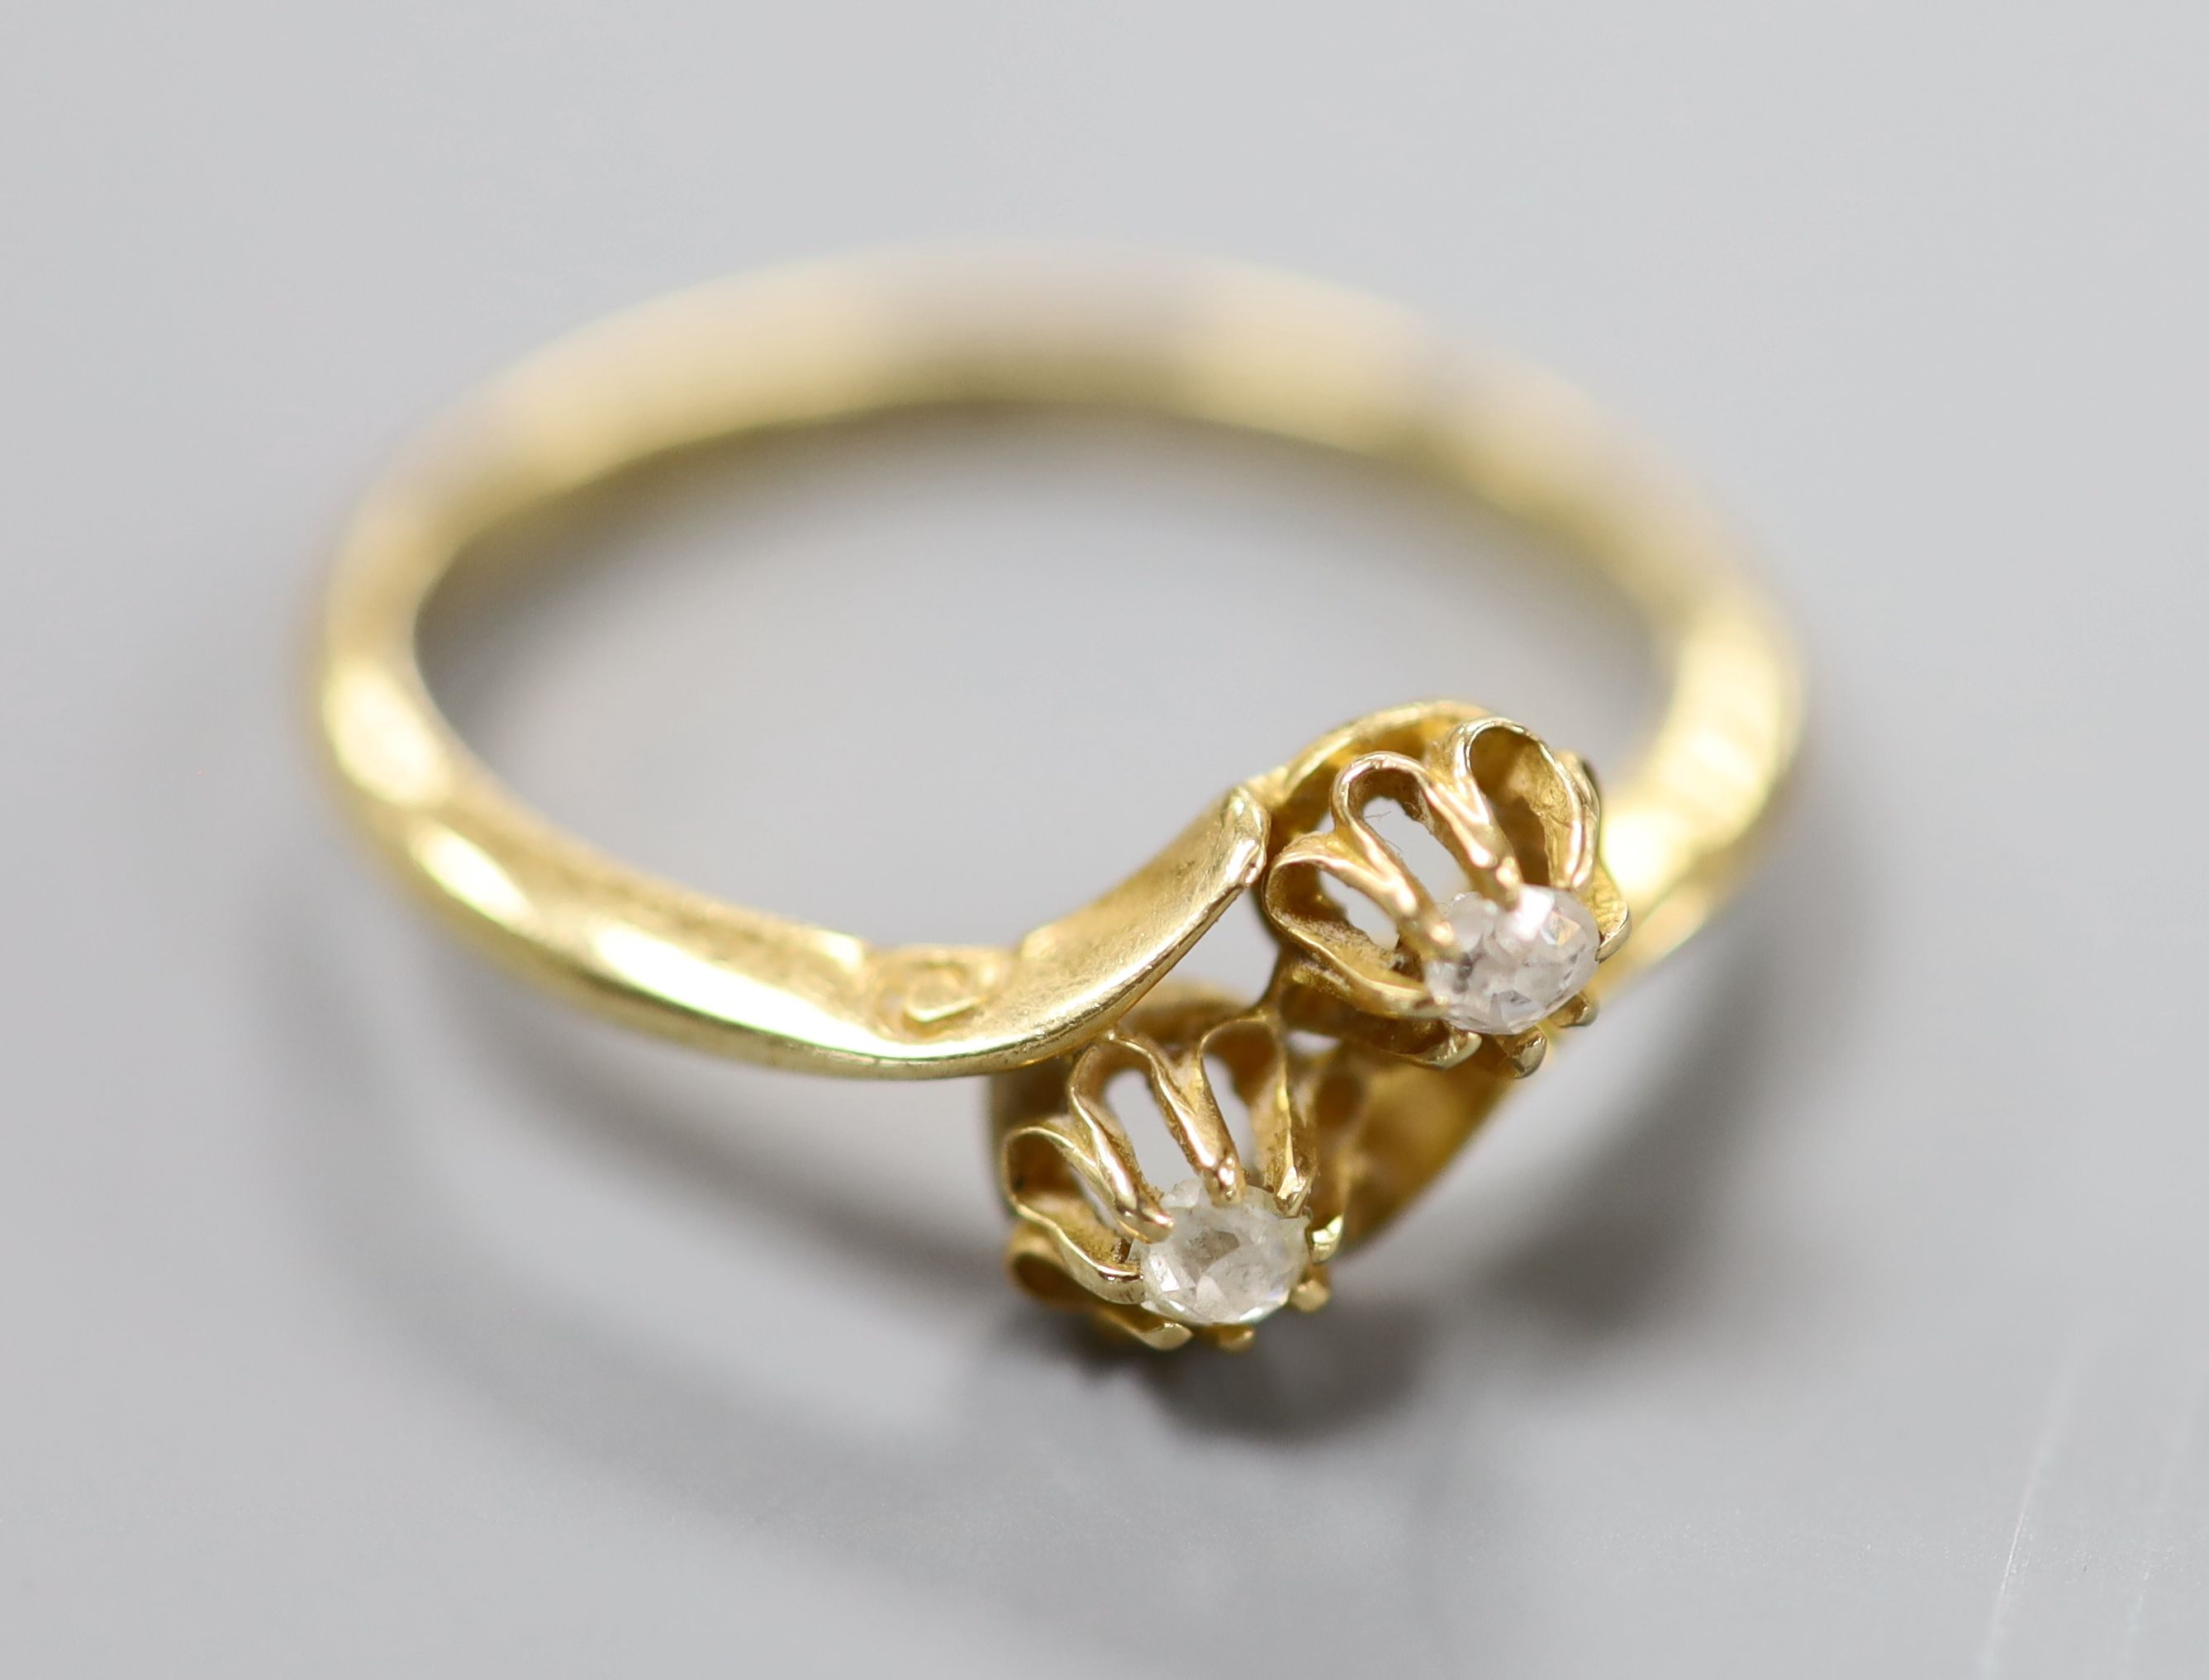 A George V 18ct gold and two stone diamond set crossover ring, size O/P, gross 2.7 grams.